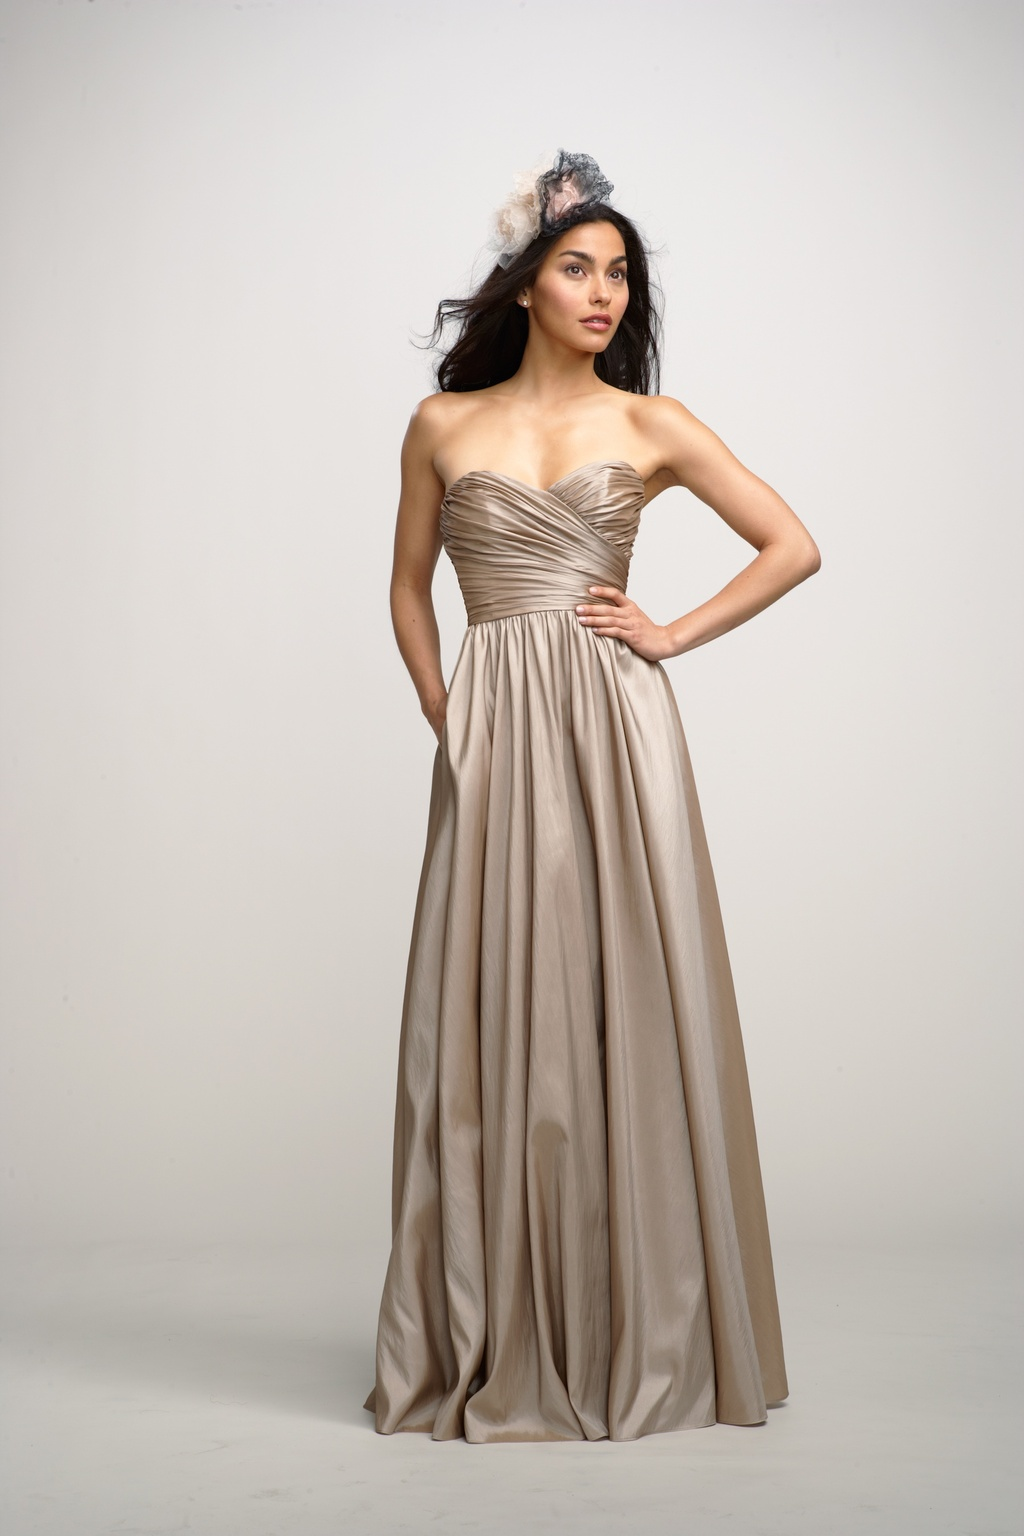 2012-bridesmaids-dresses-by-watters-bridesmaid-gown-metallic-taupe.full